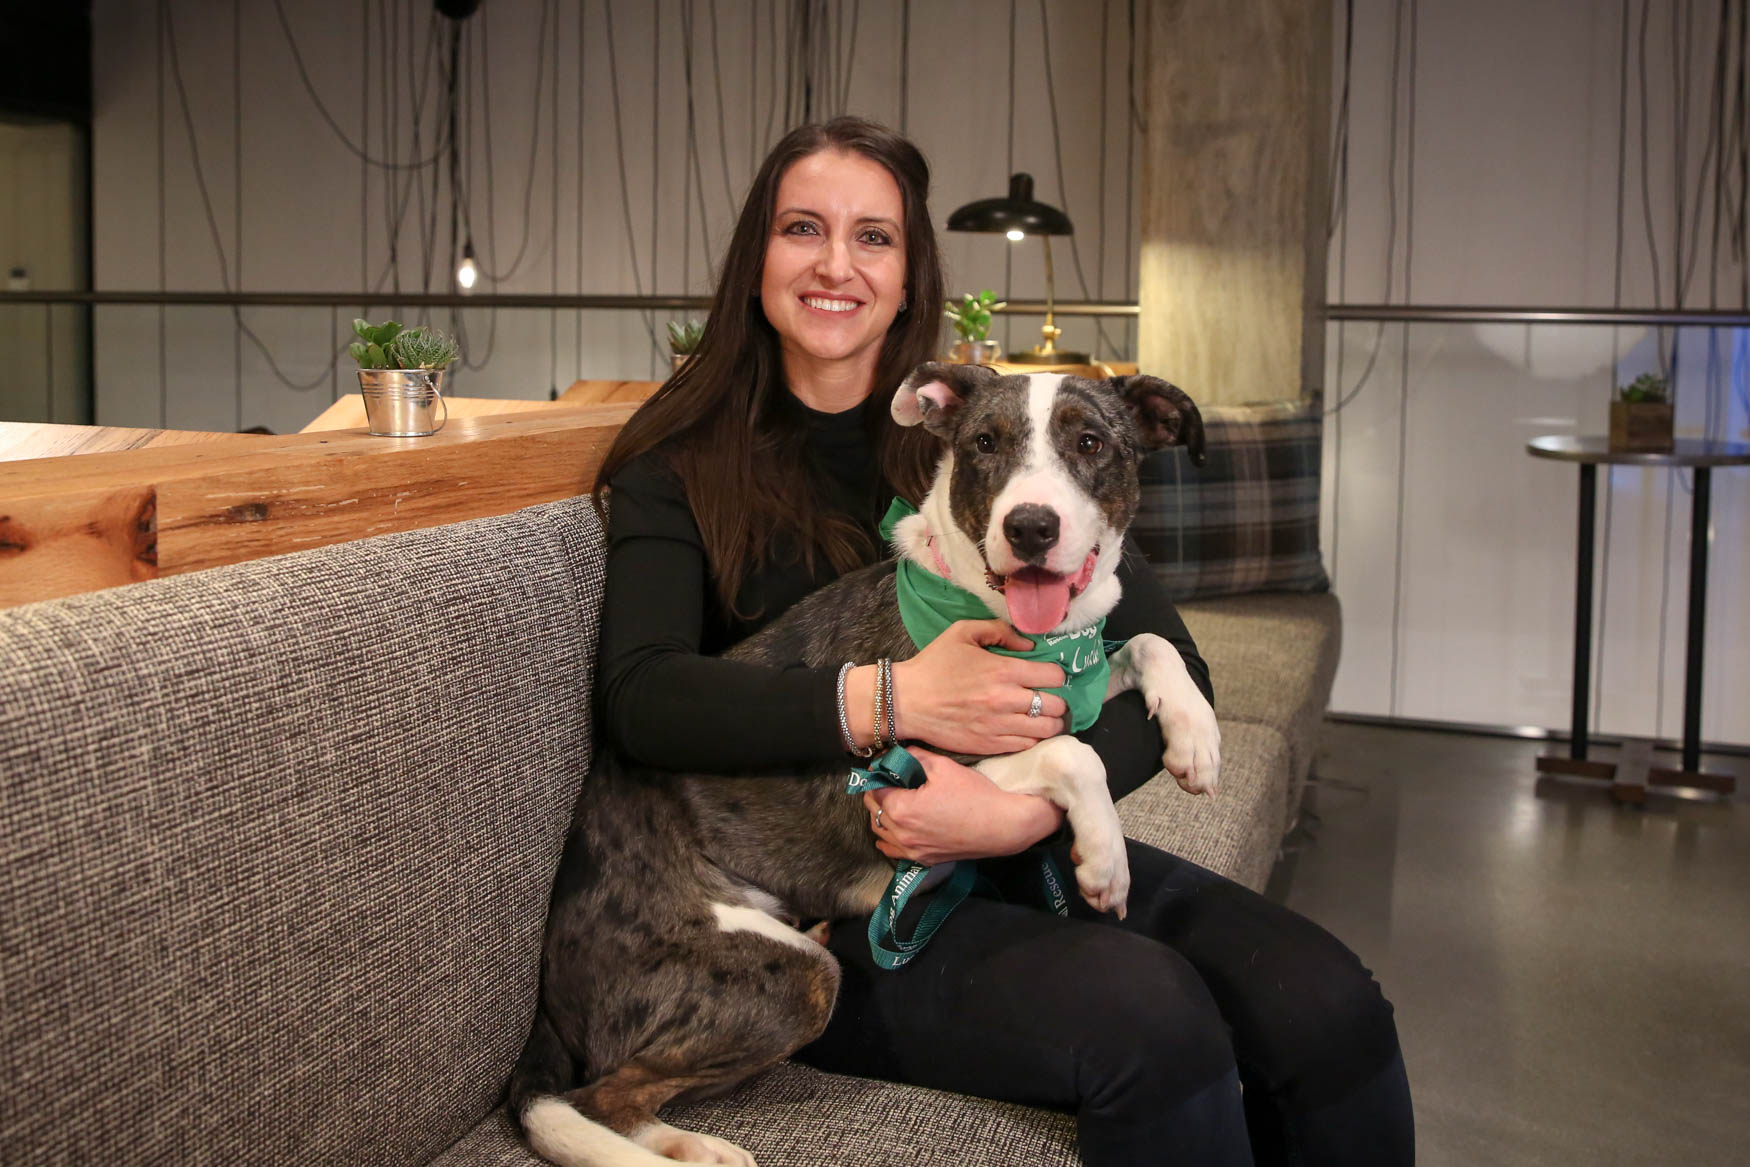 Meet Jenna and Julie, a 1-year-old Catahoula Leopard Dog mix and a 37-year-old human respectively. Photo location: Moxy Washington, D.C. Downtown (Image: Amanda Andrade-Rhoades/ DC Refined)